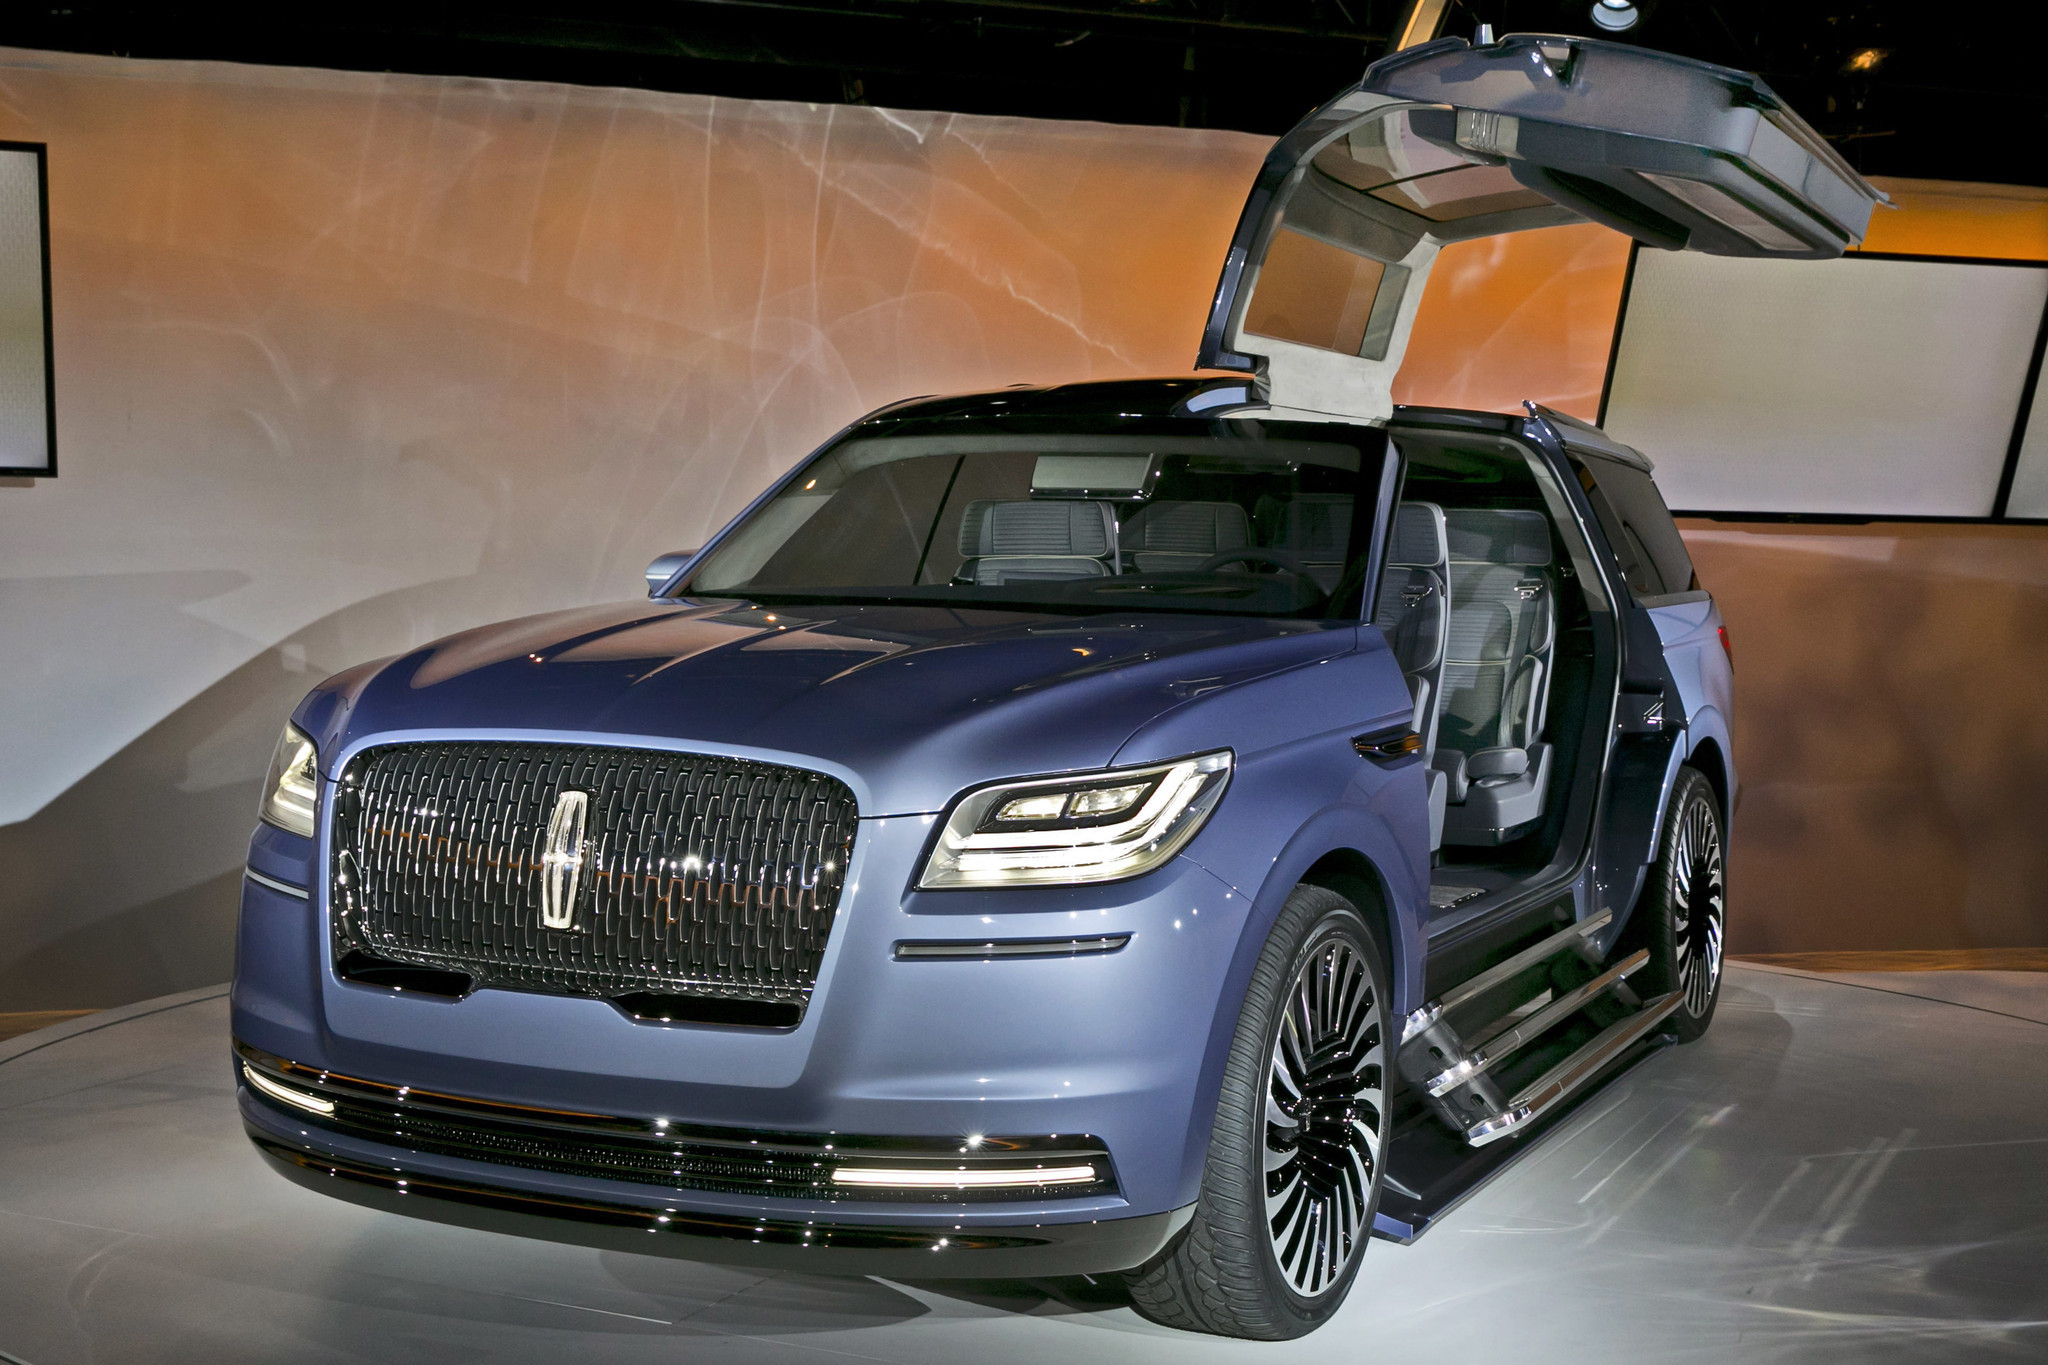 Lincoln Navigator Concept With Gullwing Doors Stuns Auto Show